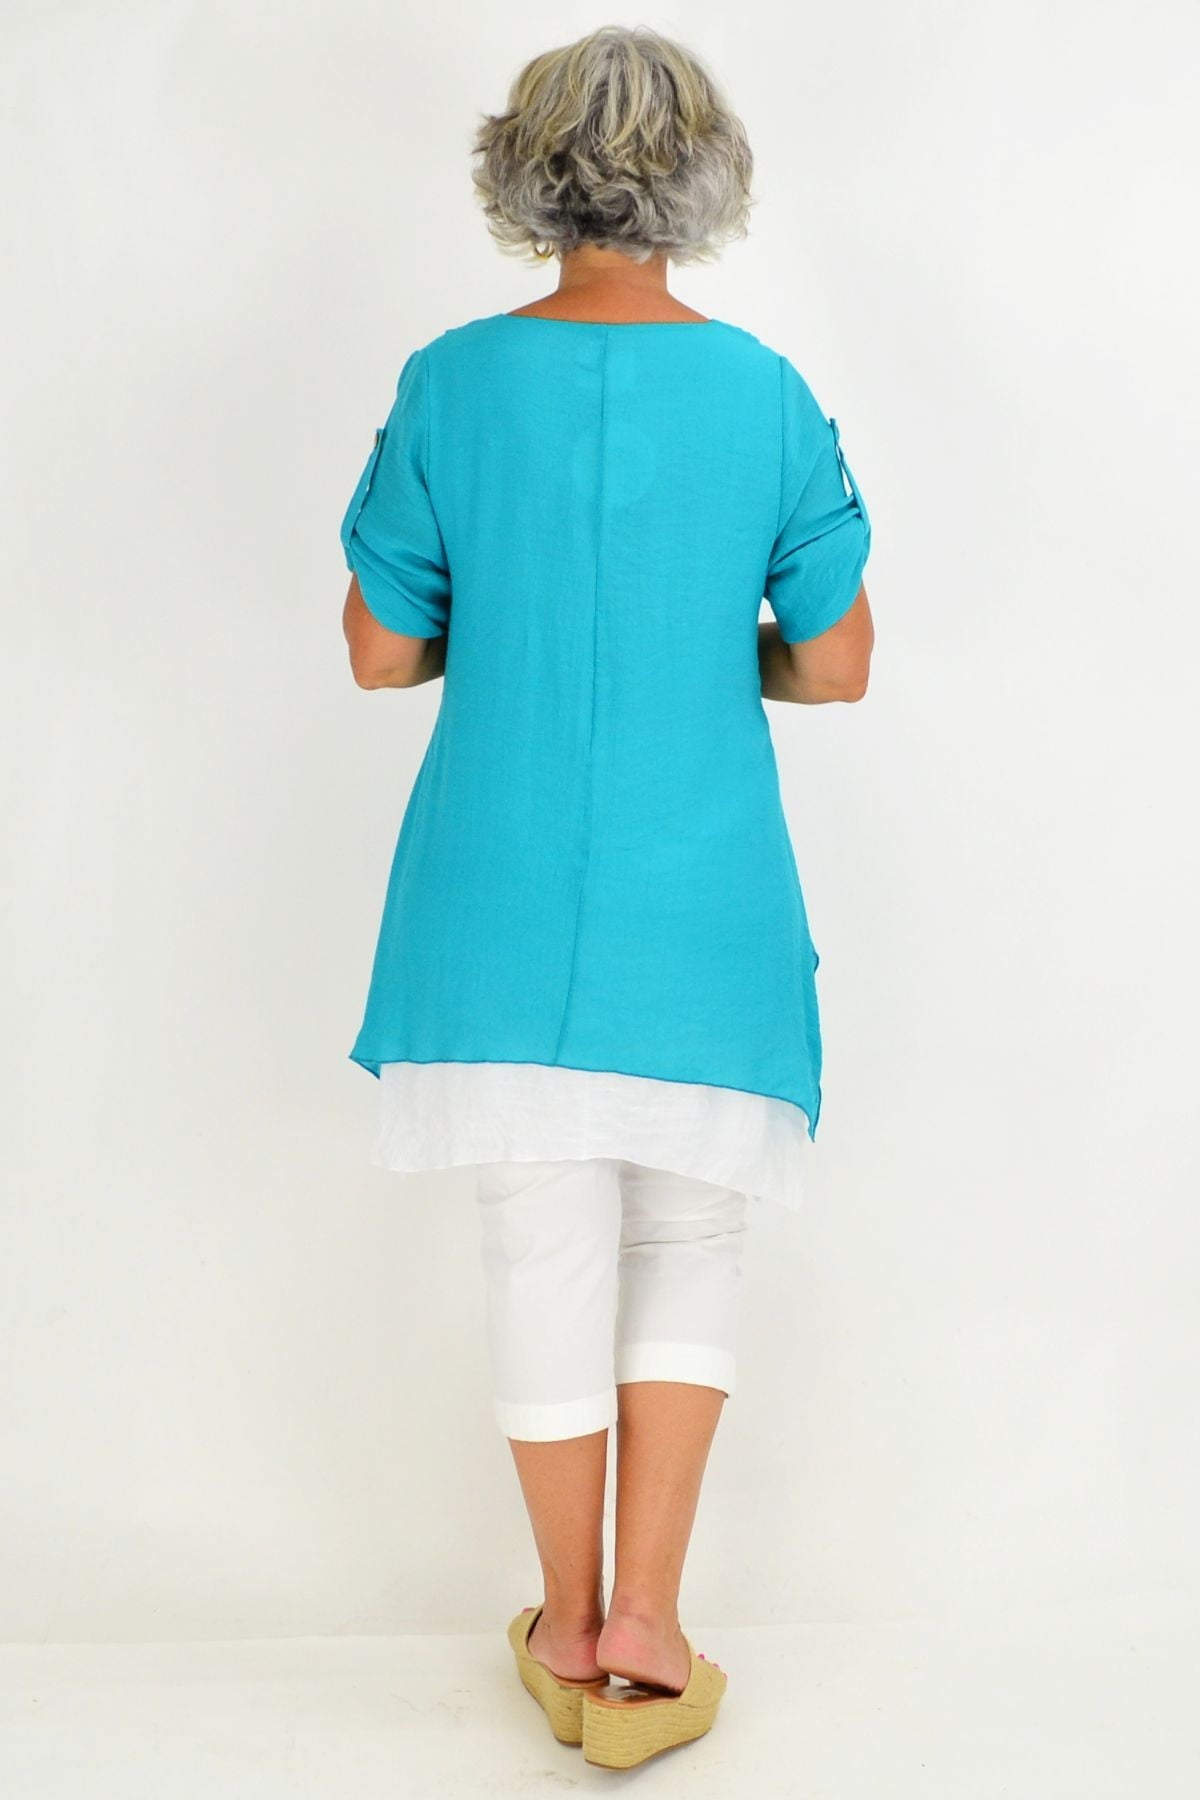 Aqua Short Sleeve Overlay Tunic Top | I Love Tunics | Tunic Tops | Tunic | Tunic Dresses  | womens clothing online